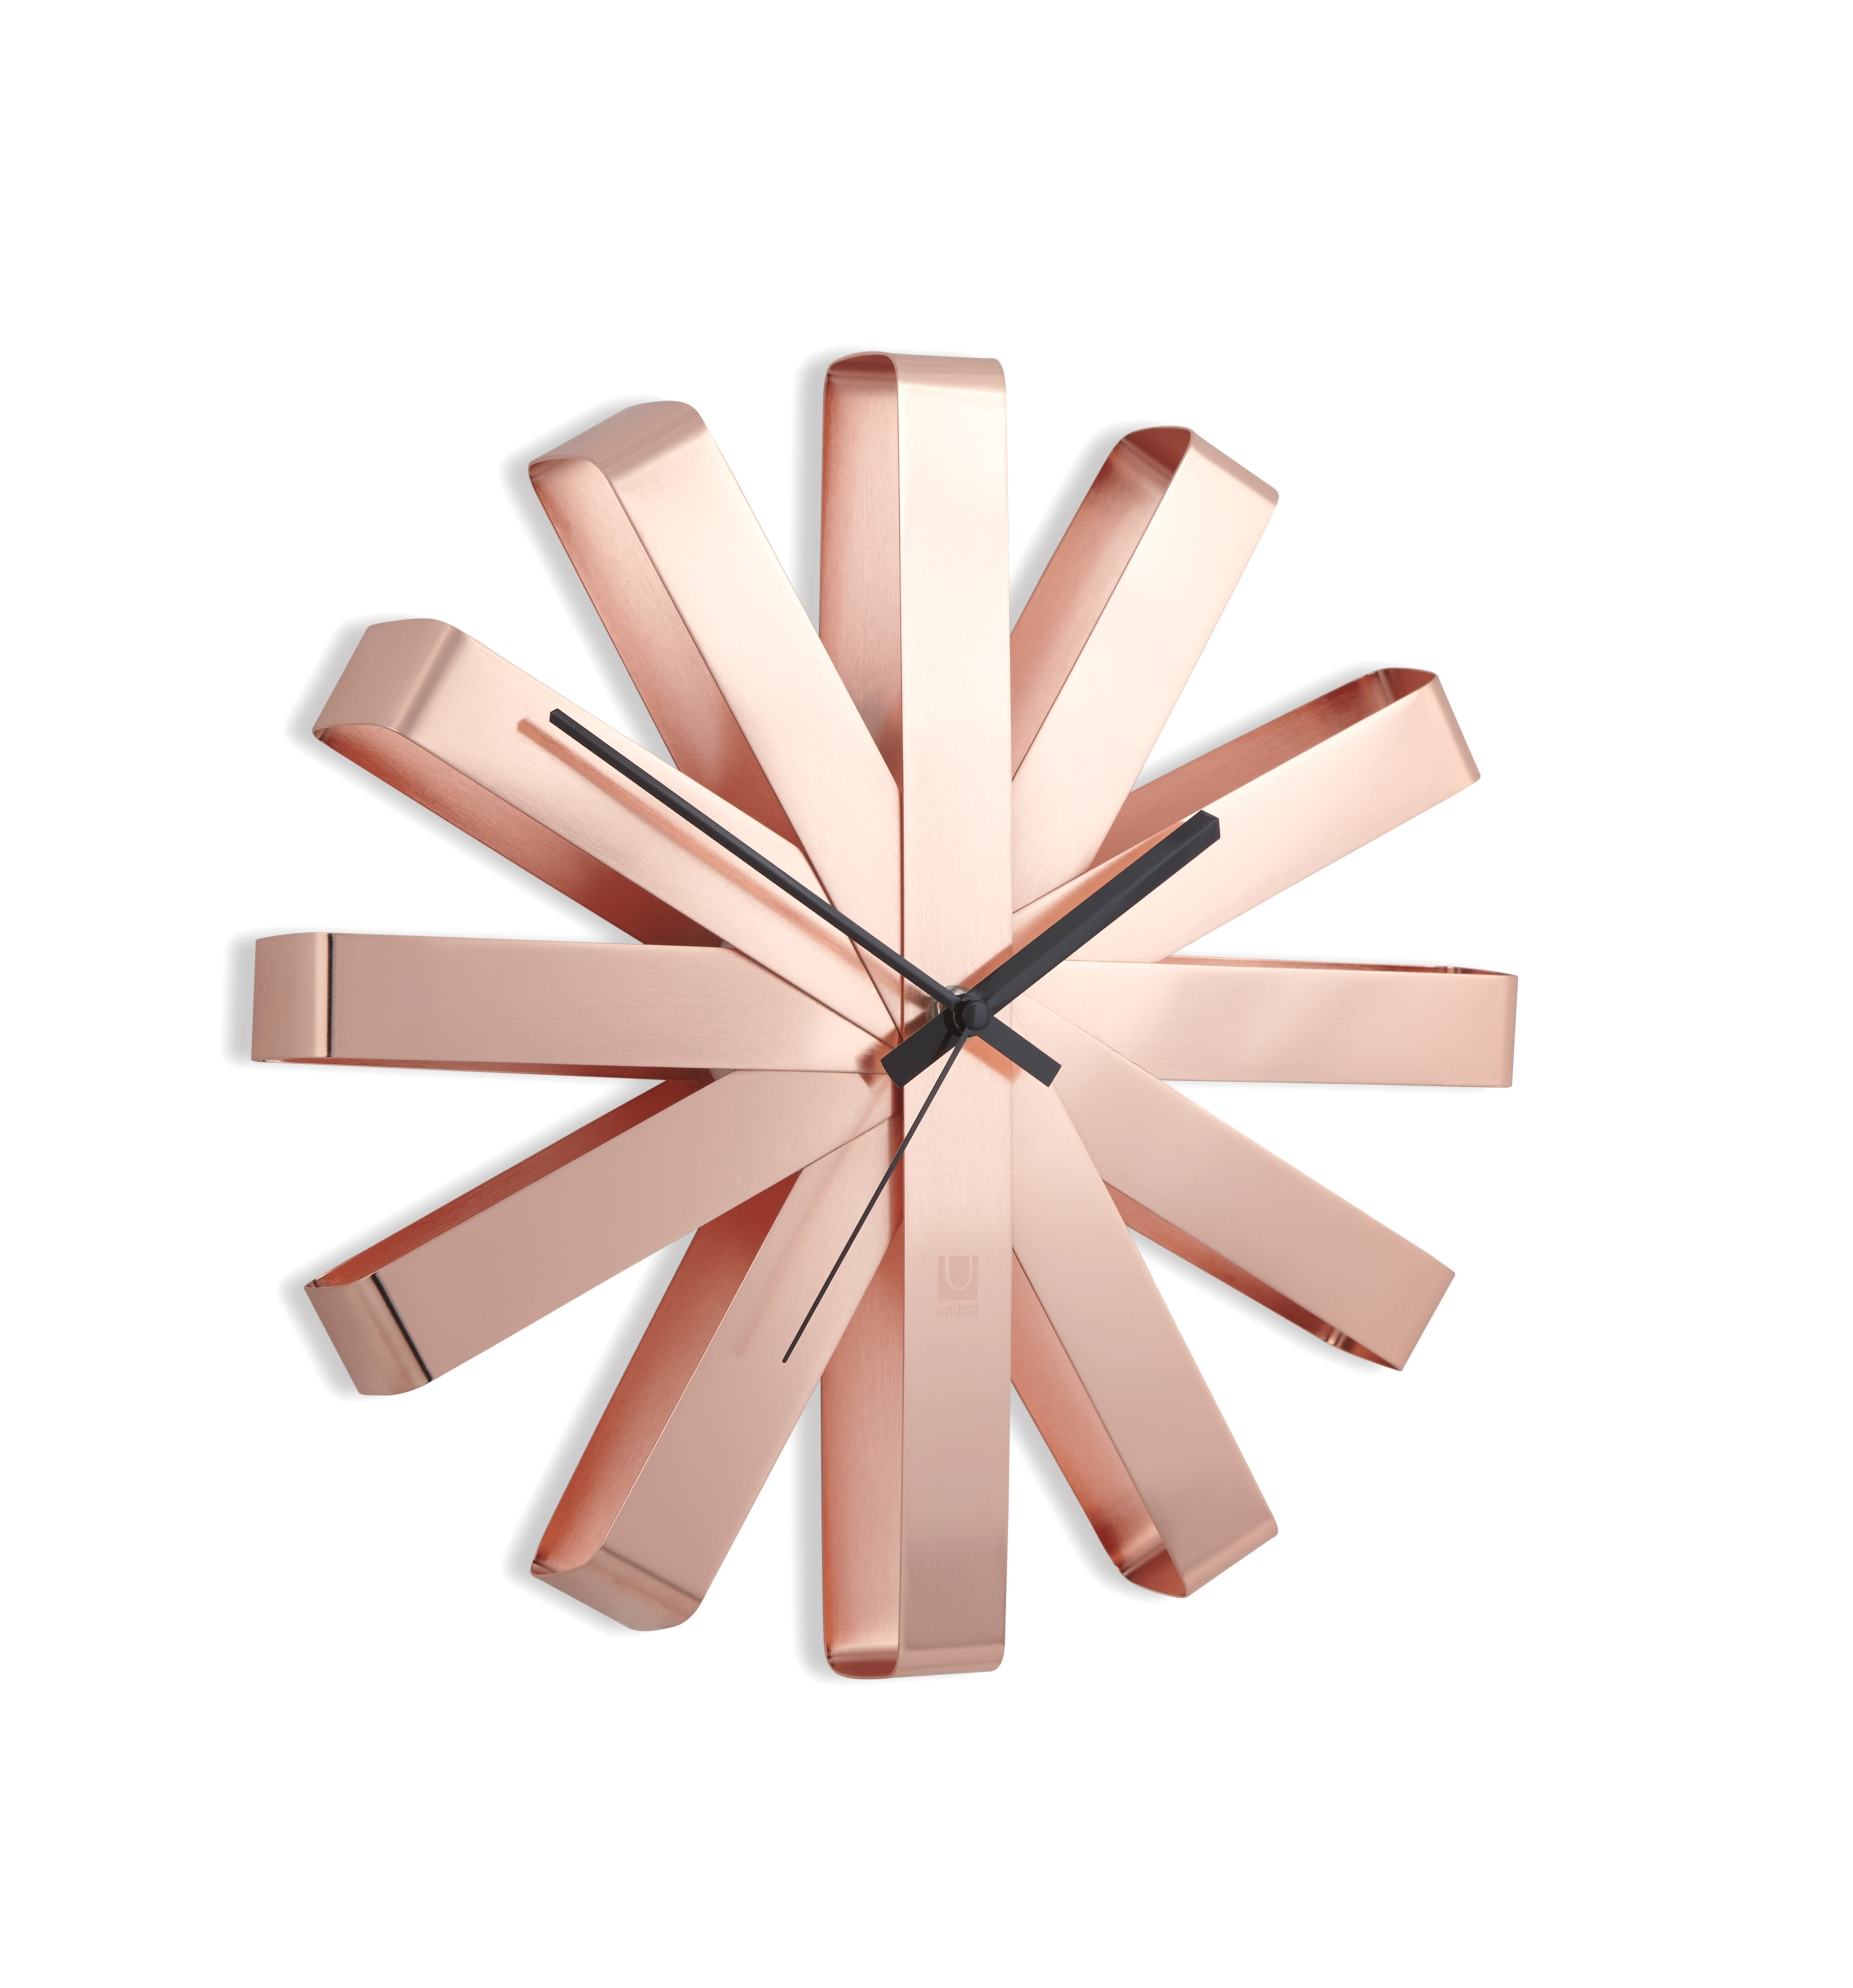 Design wall clock for a contemporary interior with artwall and co